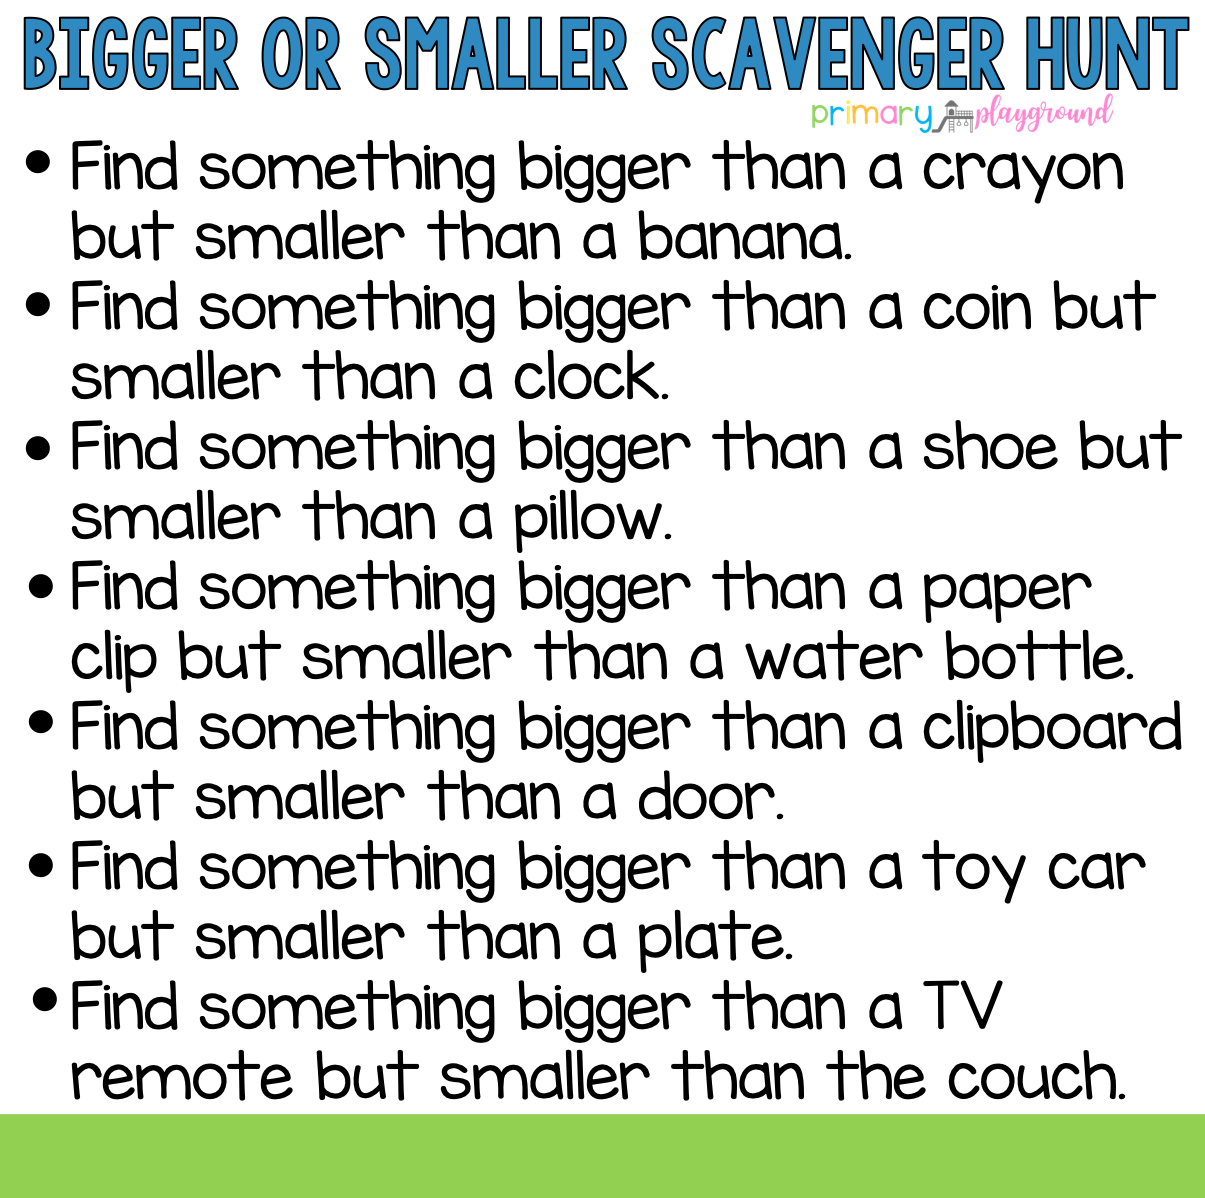 Bigger Or Smaller Scavenger Hunt In